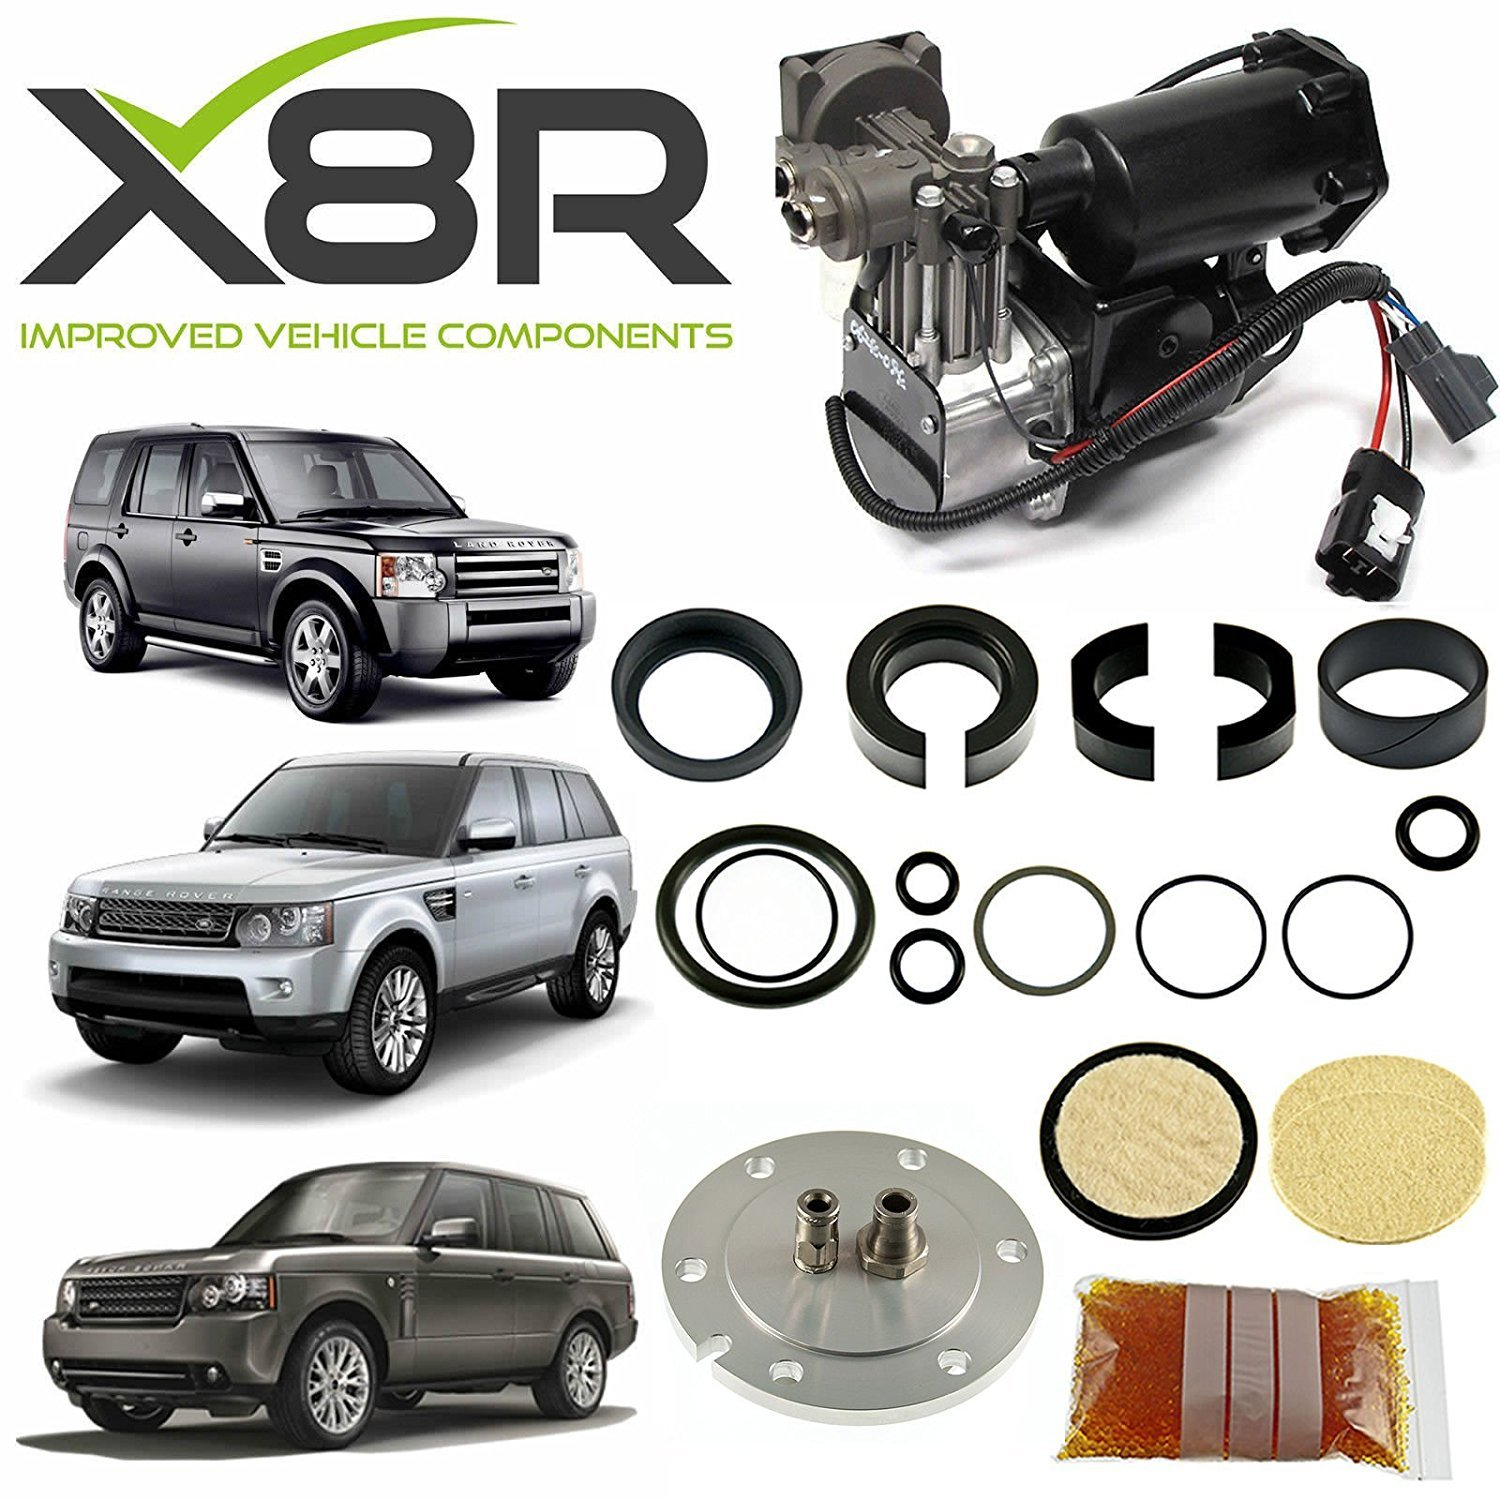 LAND ROVER RANGE ROVER SPORT 2005-2013 HITACHI AIR COMPRESSOR AND FILTER DRYER REPAIR KIT PART: X8R44